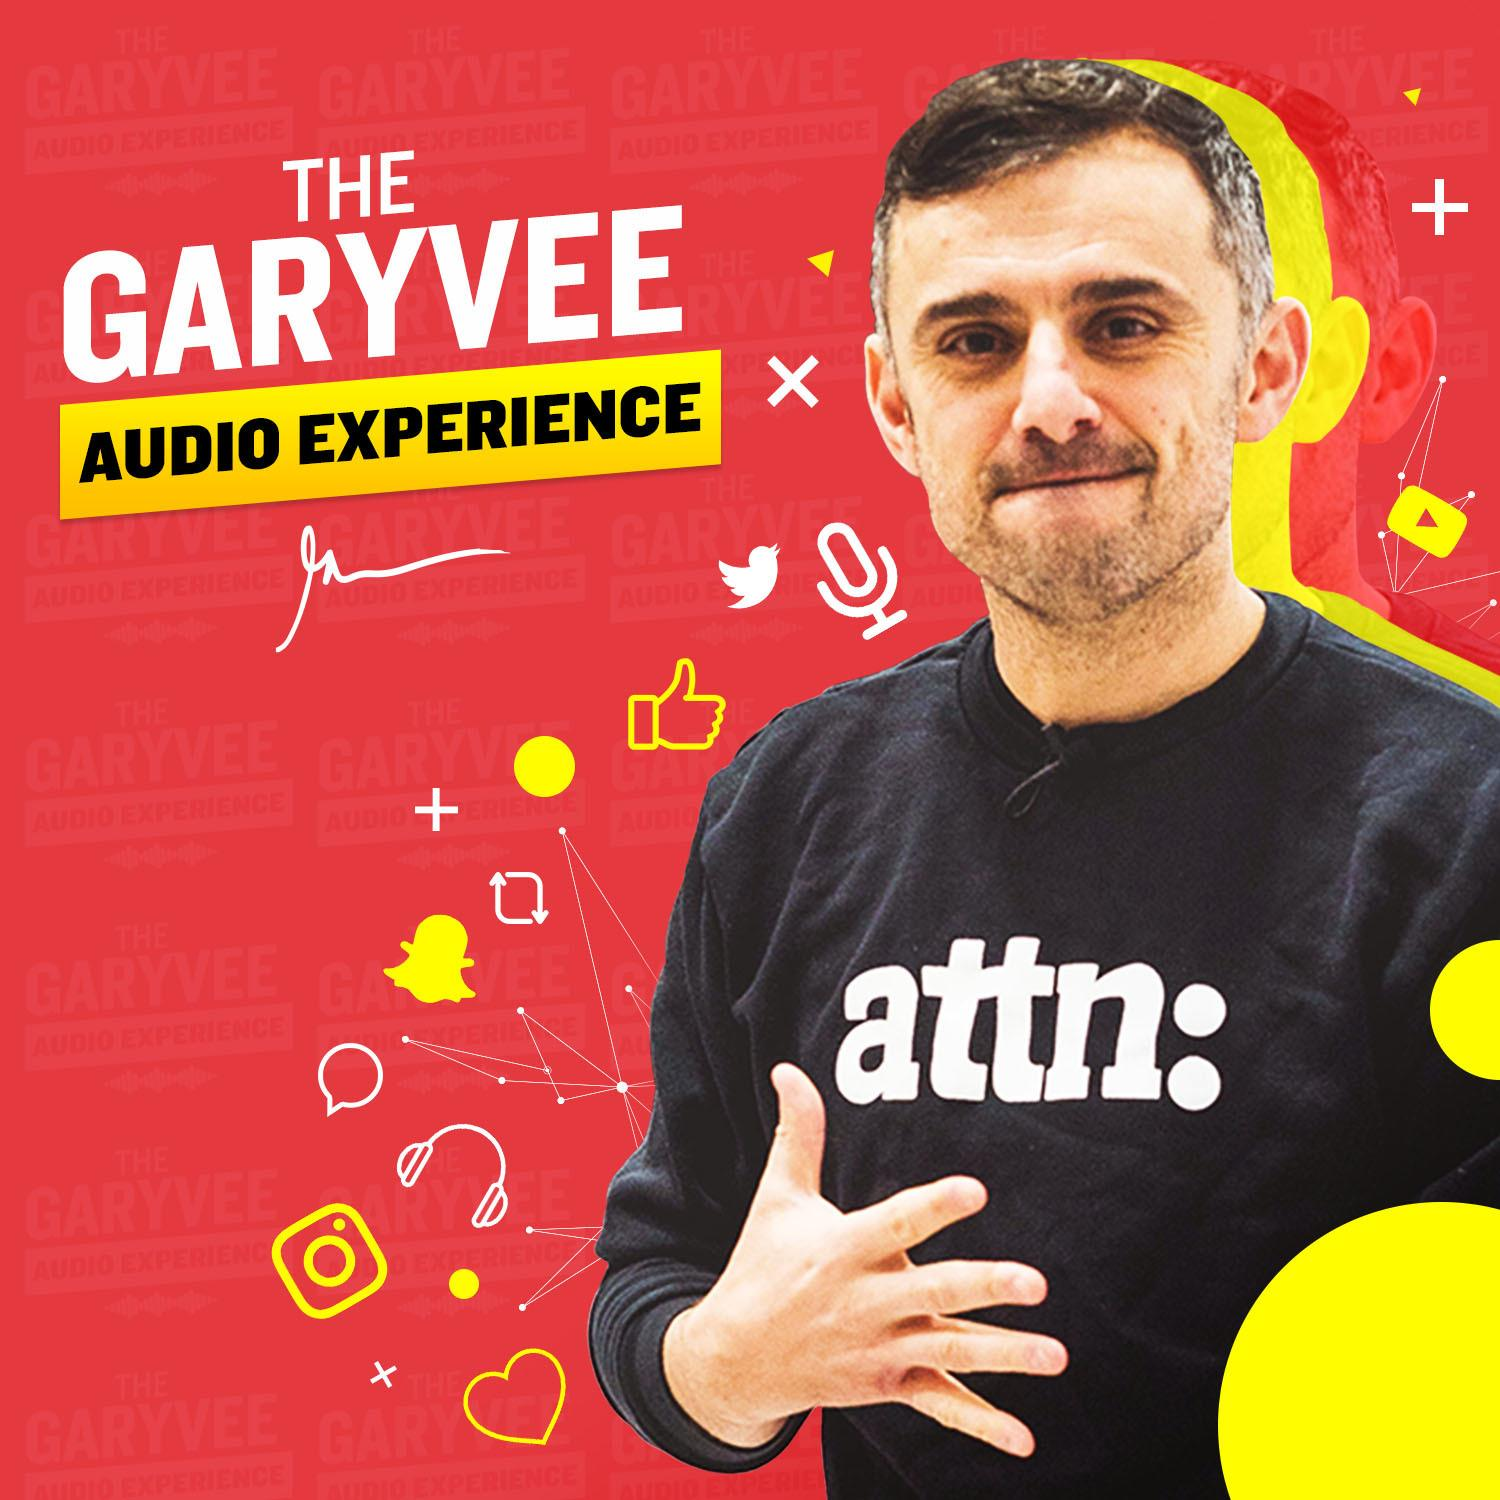 the gary vee audio experience podcast cover art